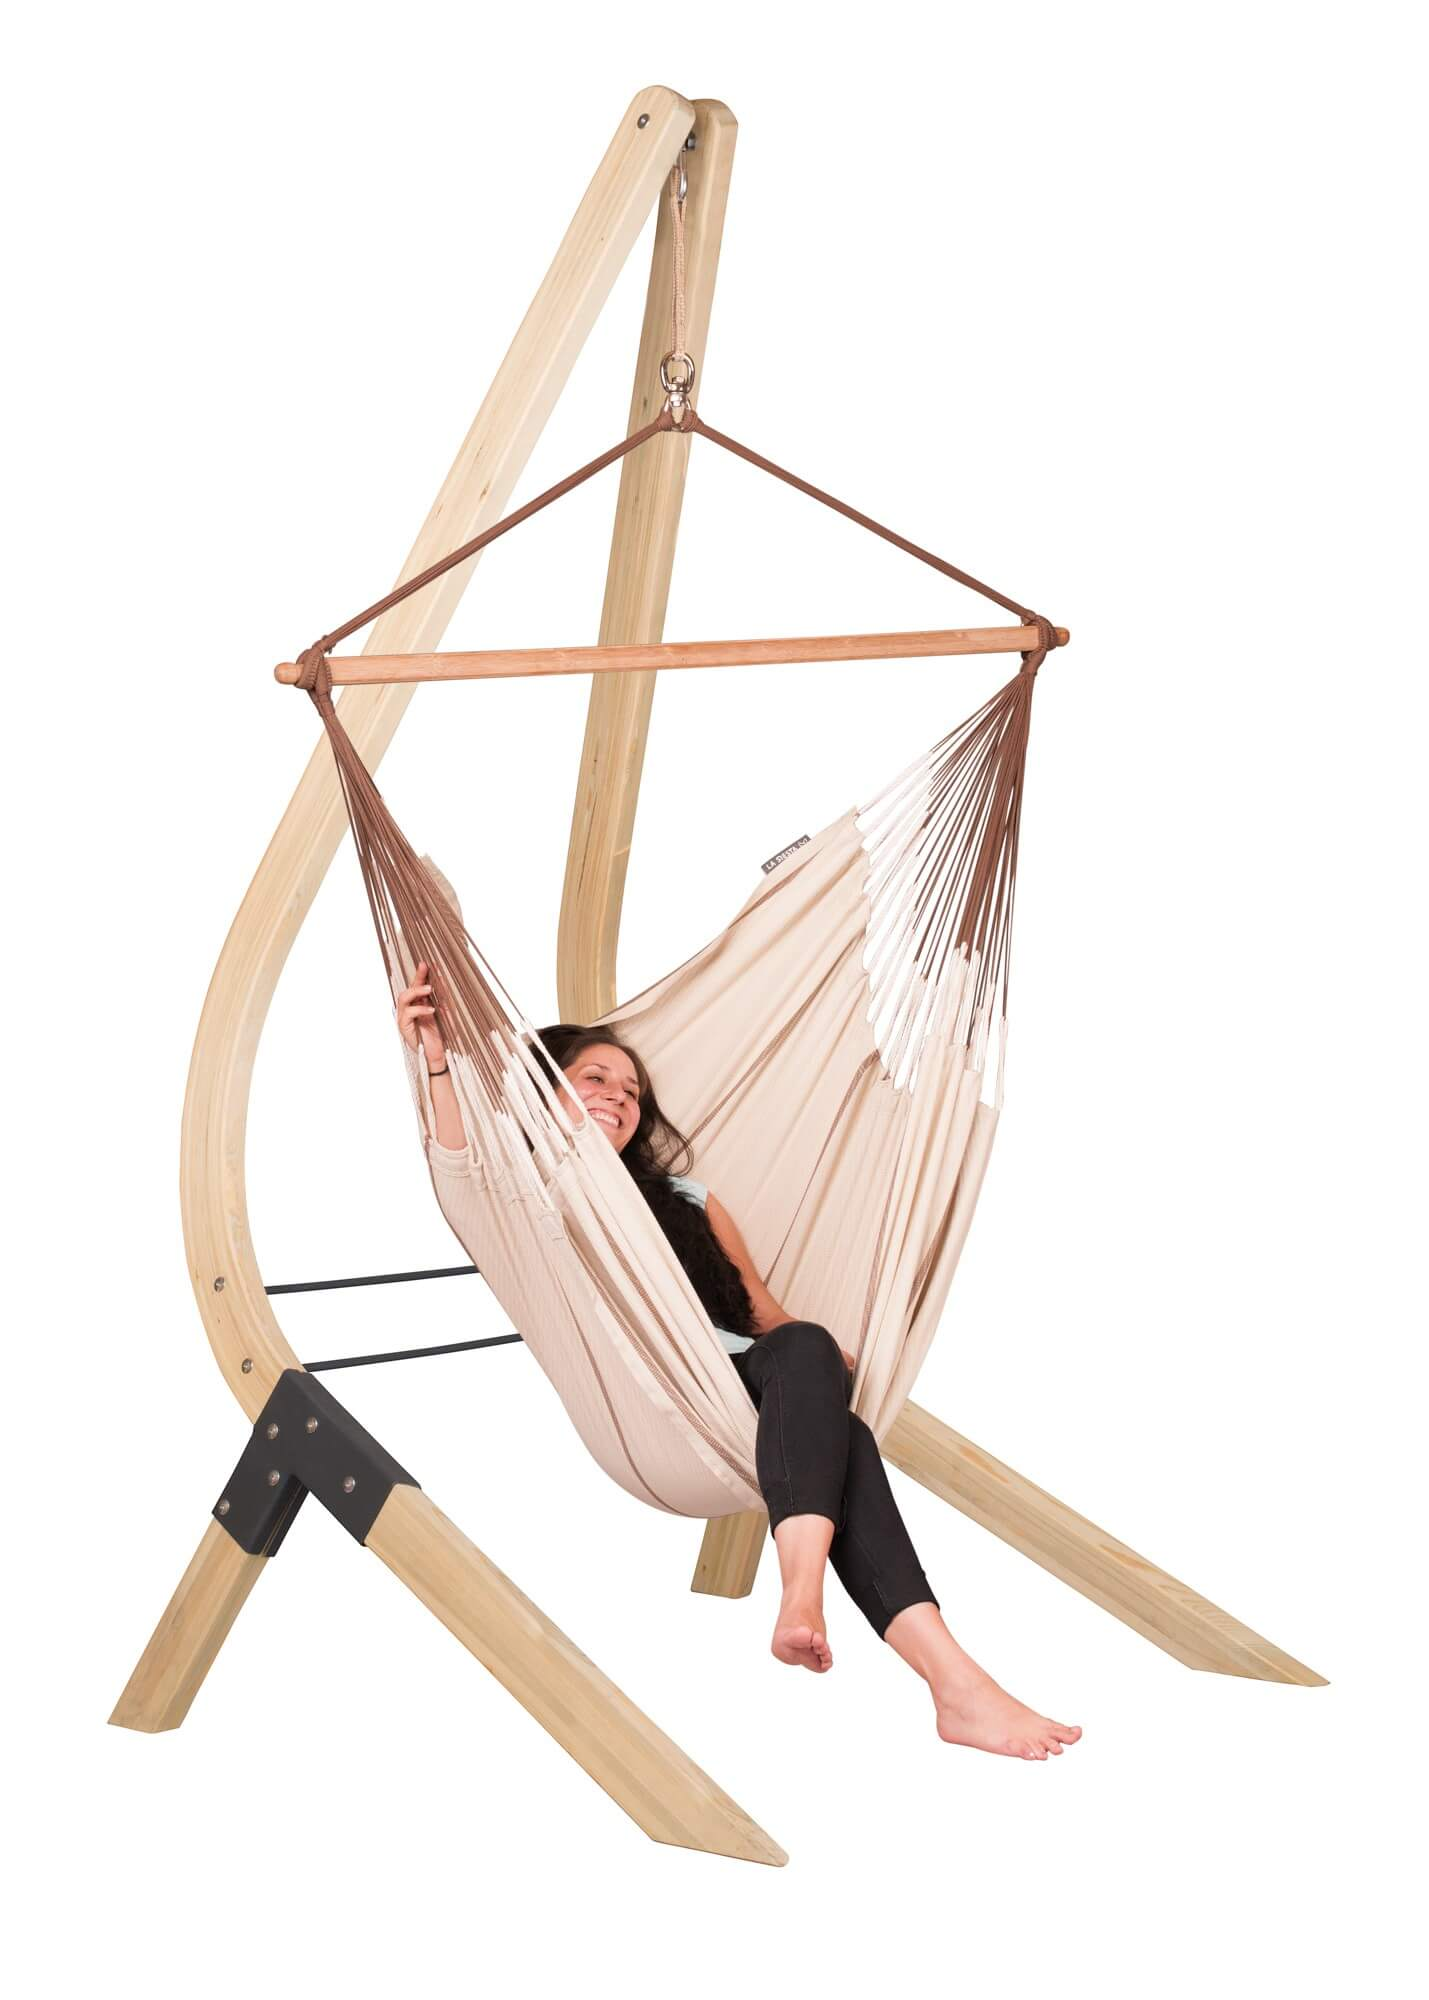 Hammock Chair Habana Nougat With Wooden Stand